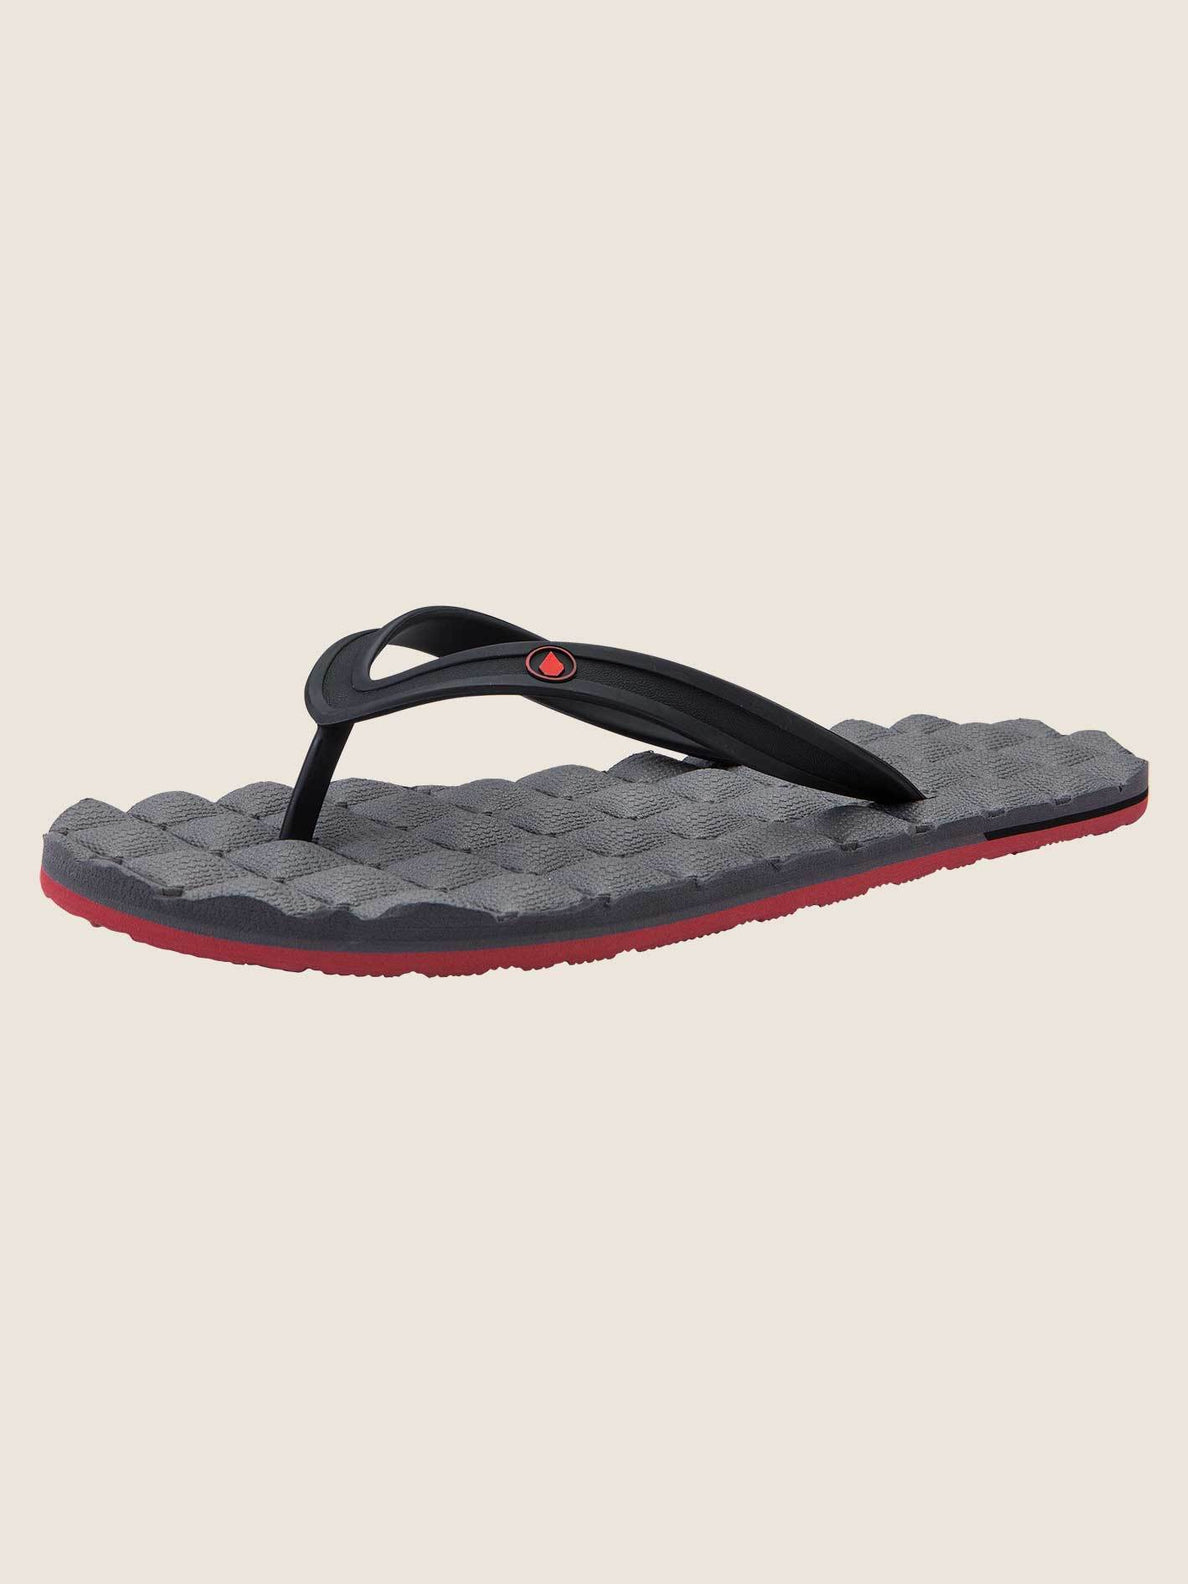 Recliner Rubber 2 Sandals In Pewter, Back View